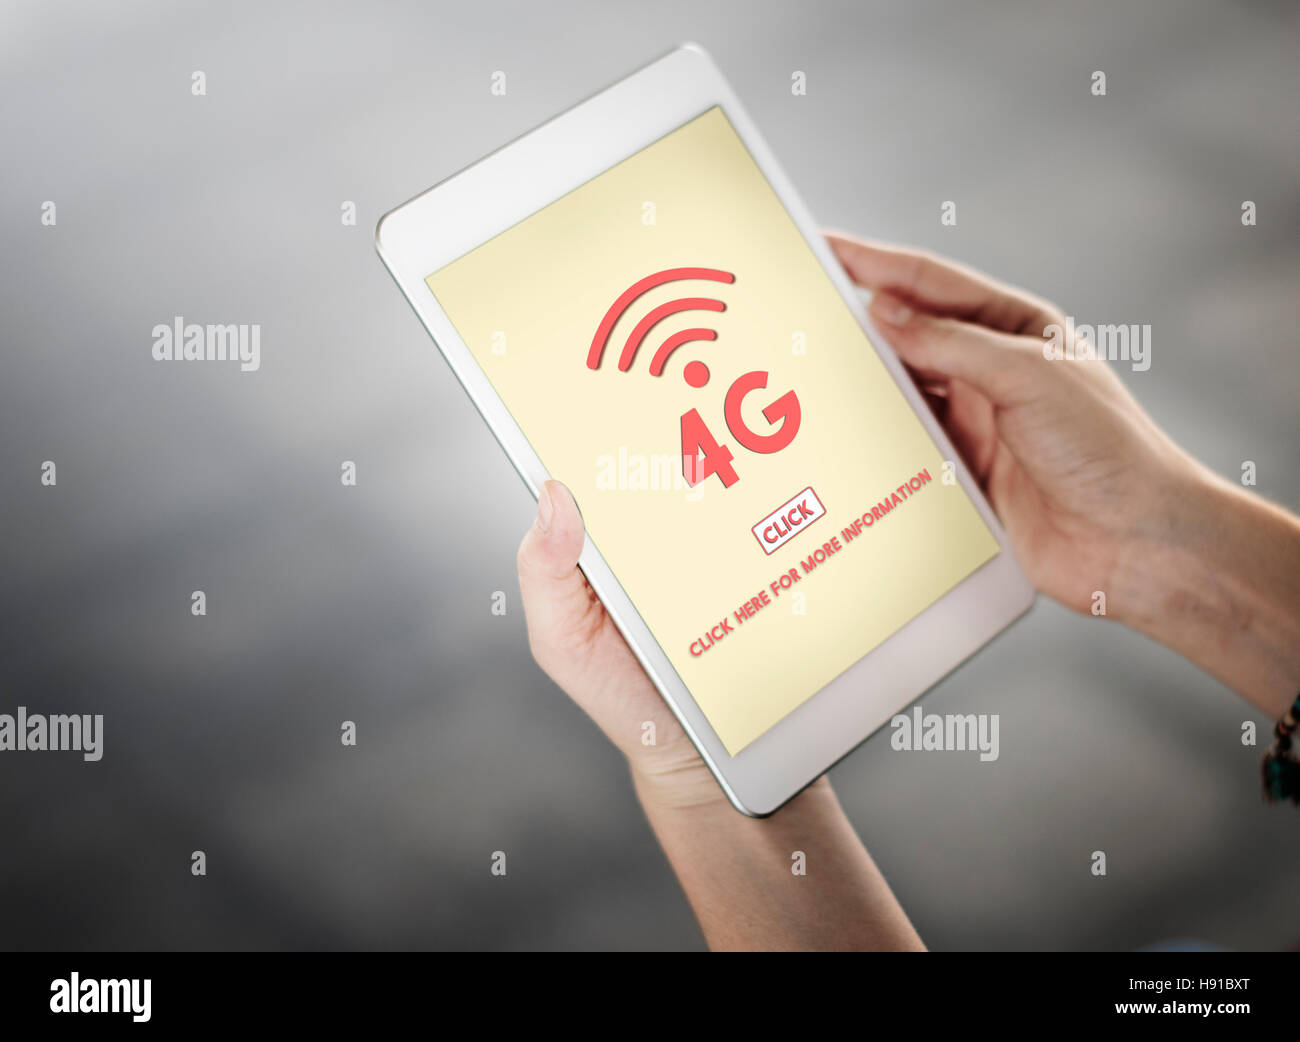 4G Digital Internet Network Technology Wifi Concept - Stock Image